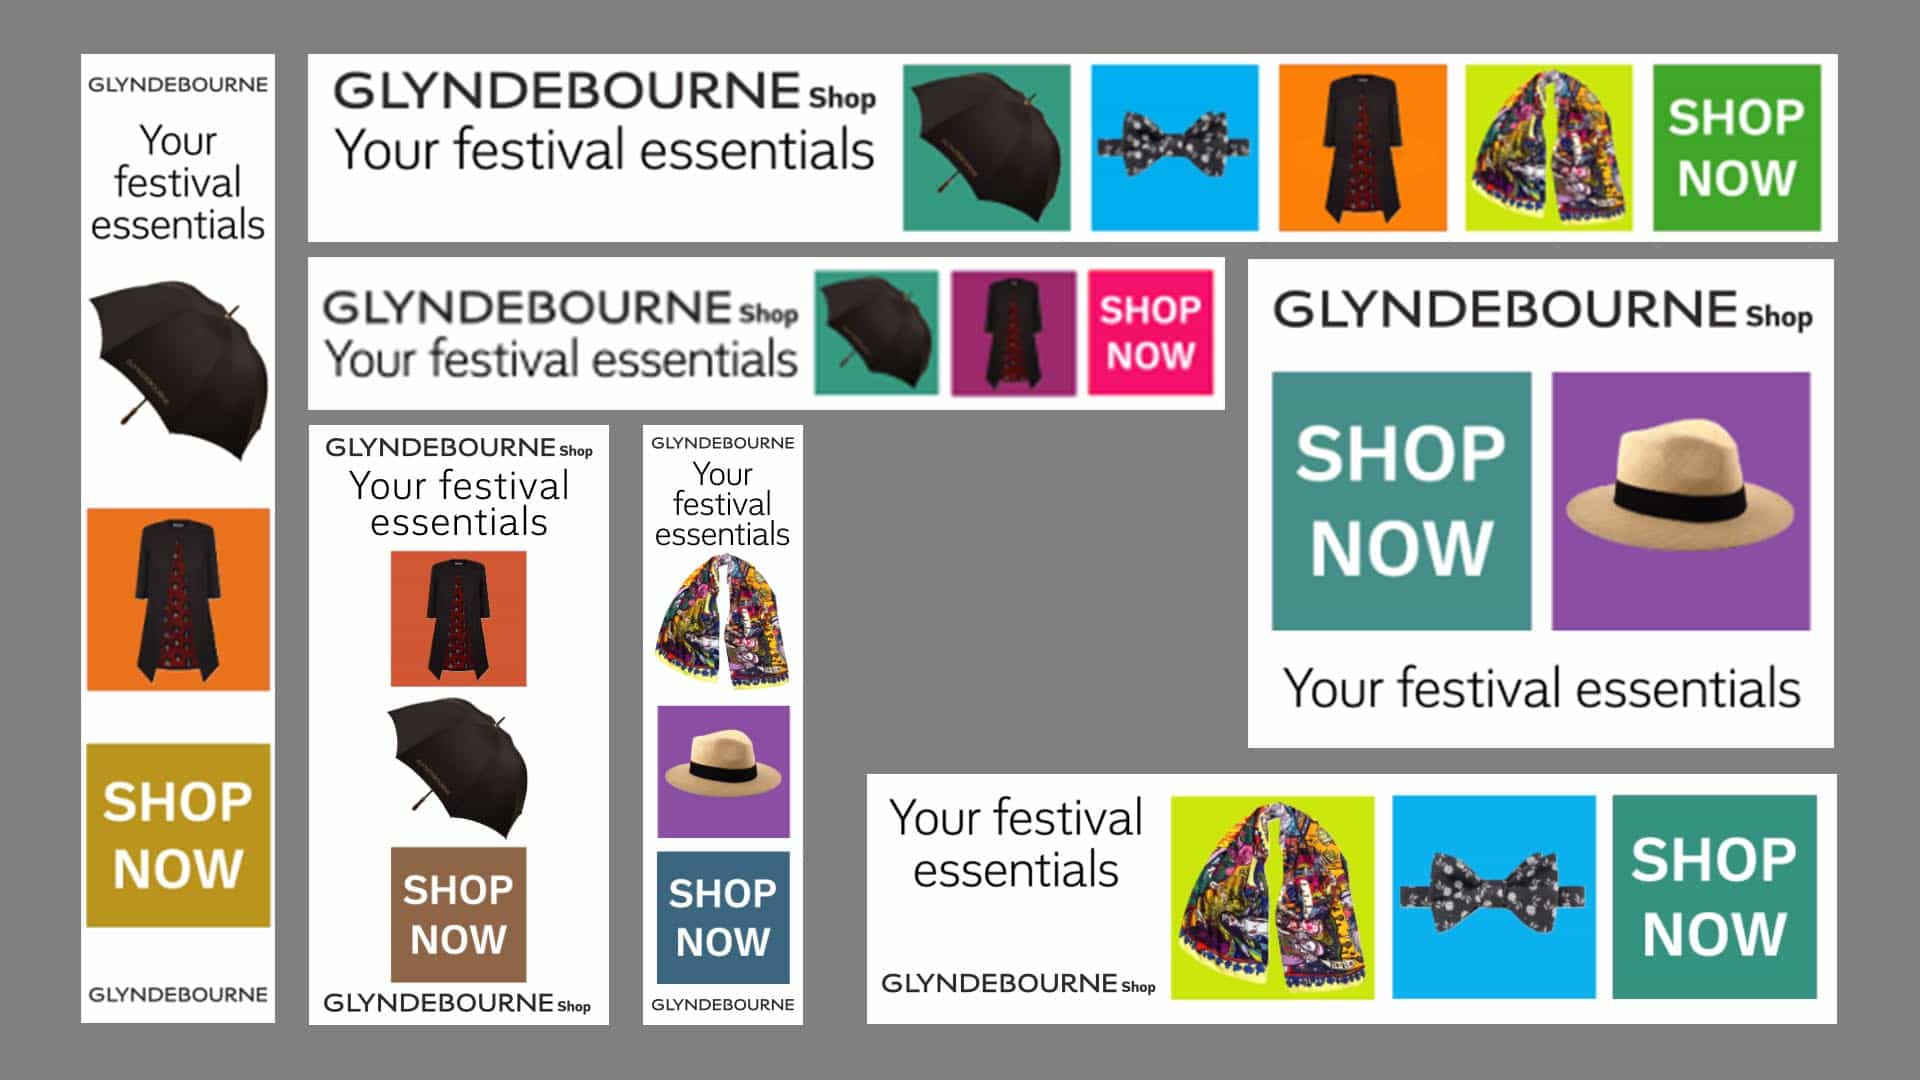 Online advertising, online marketing for Gyndebourne Opera